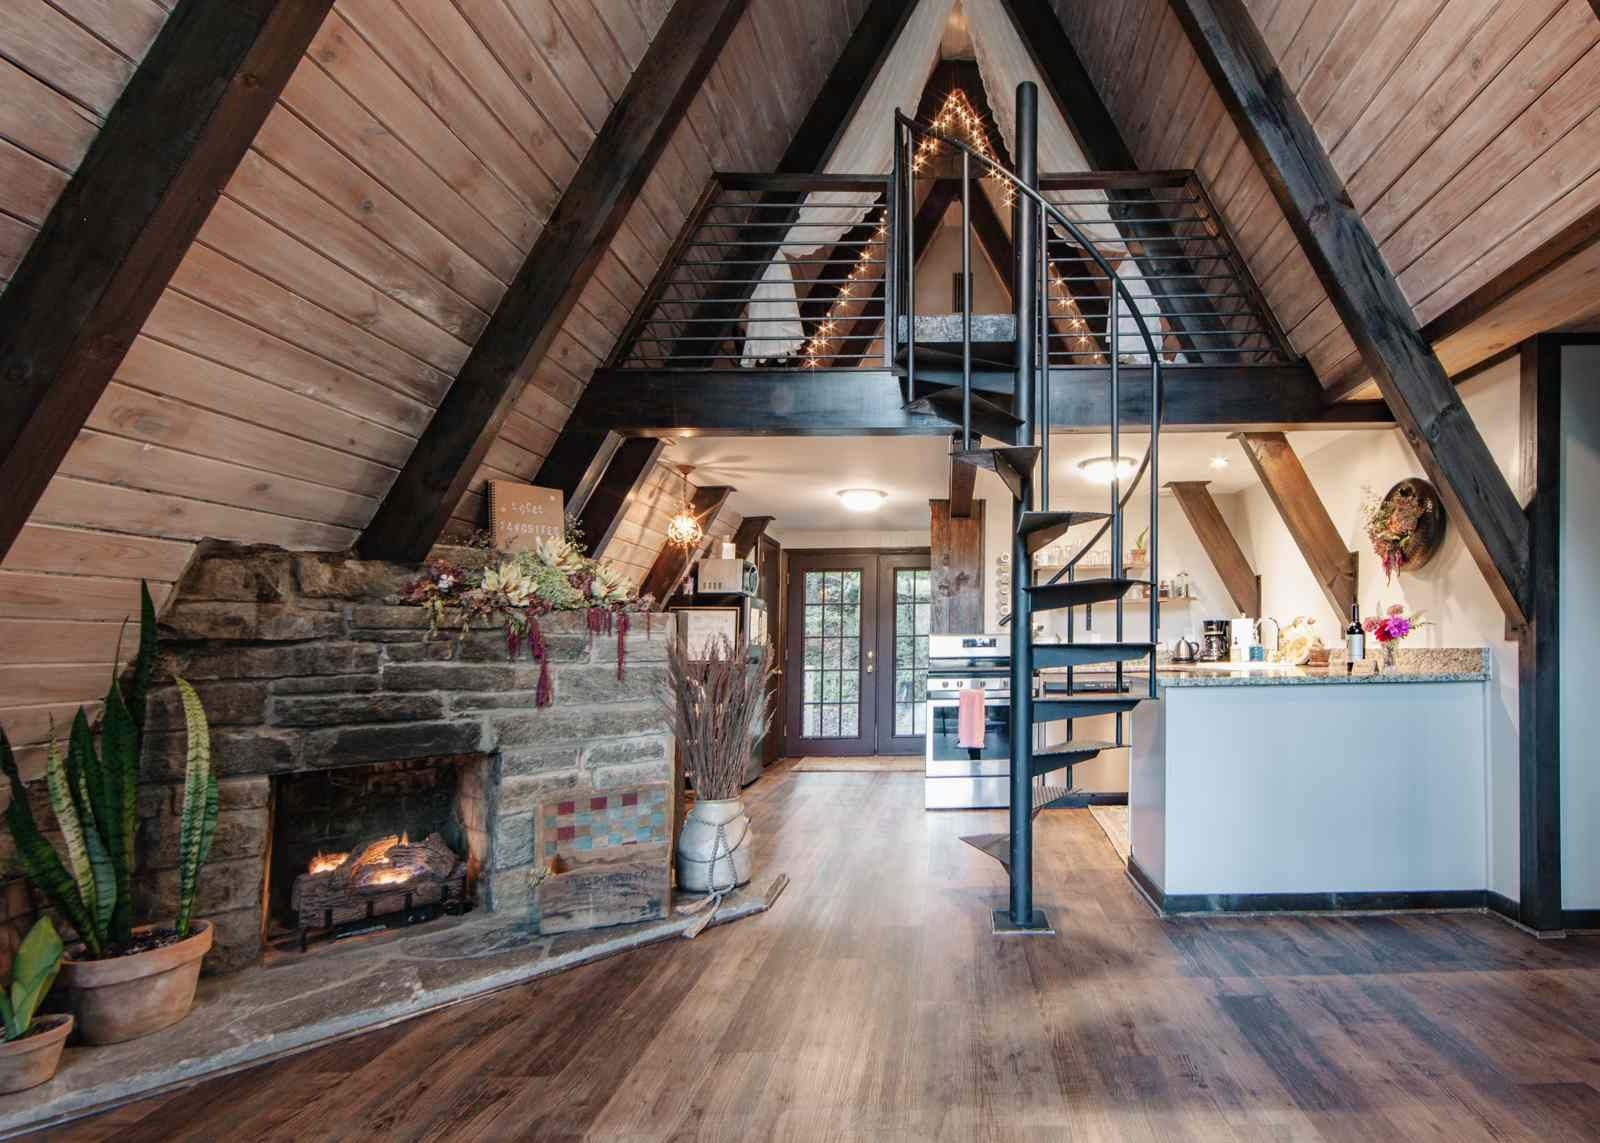 A Frame Houses For The Ultimate Inspiration In 2020 A Frame House Plans A Frame House Tiny House Cabin